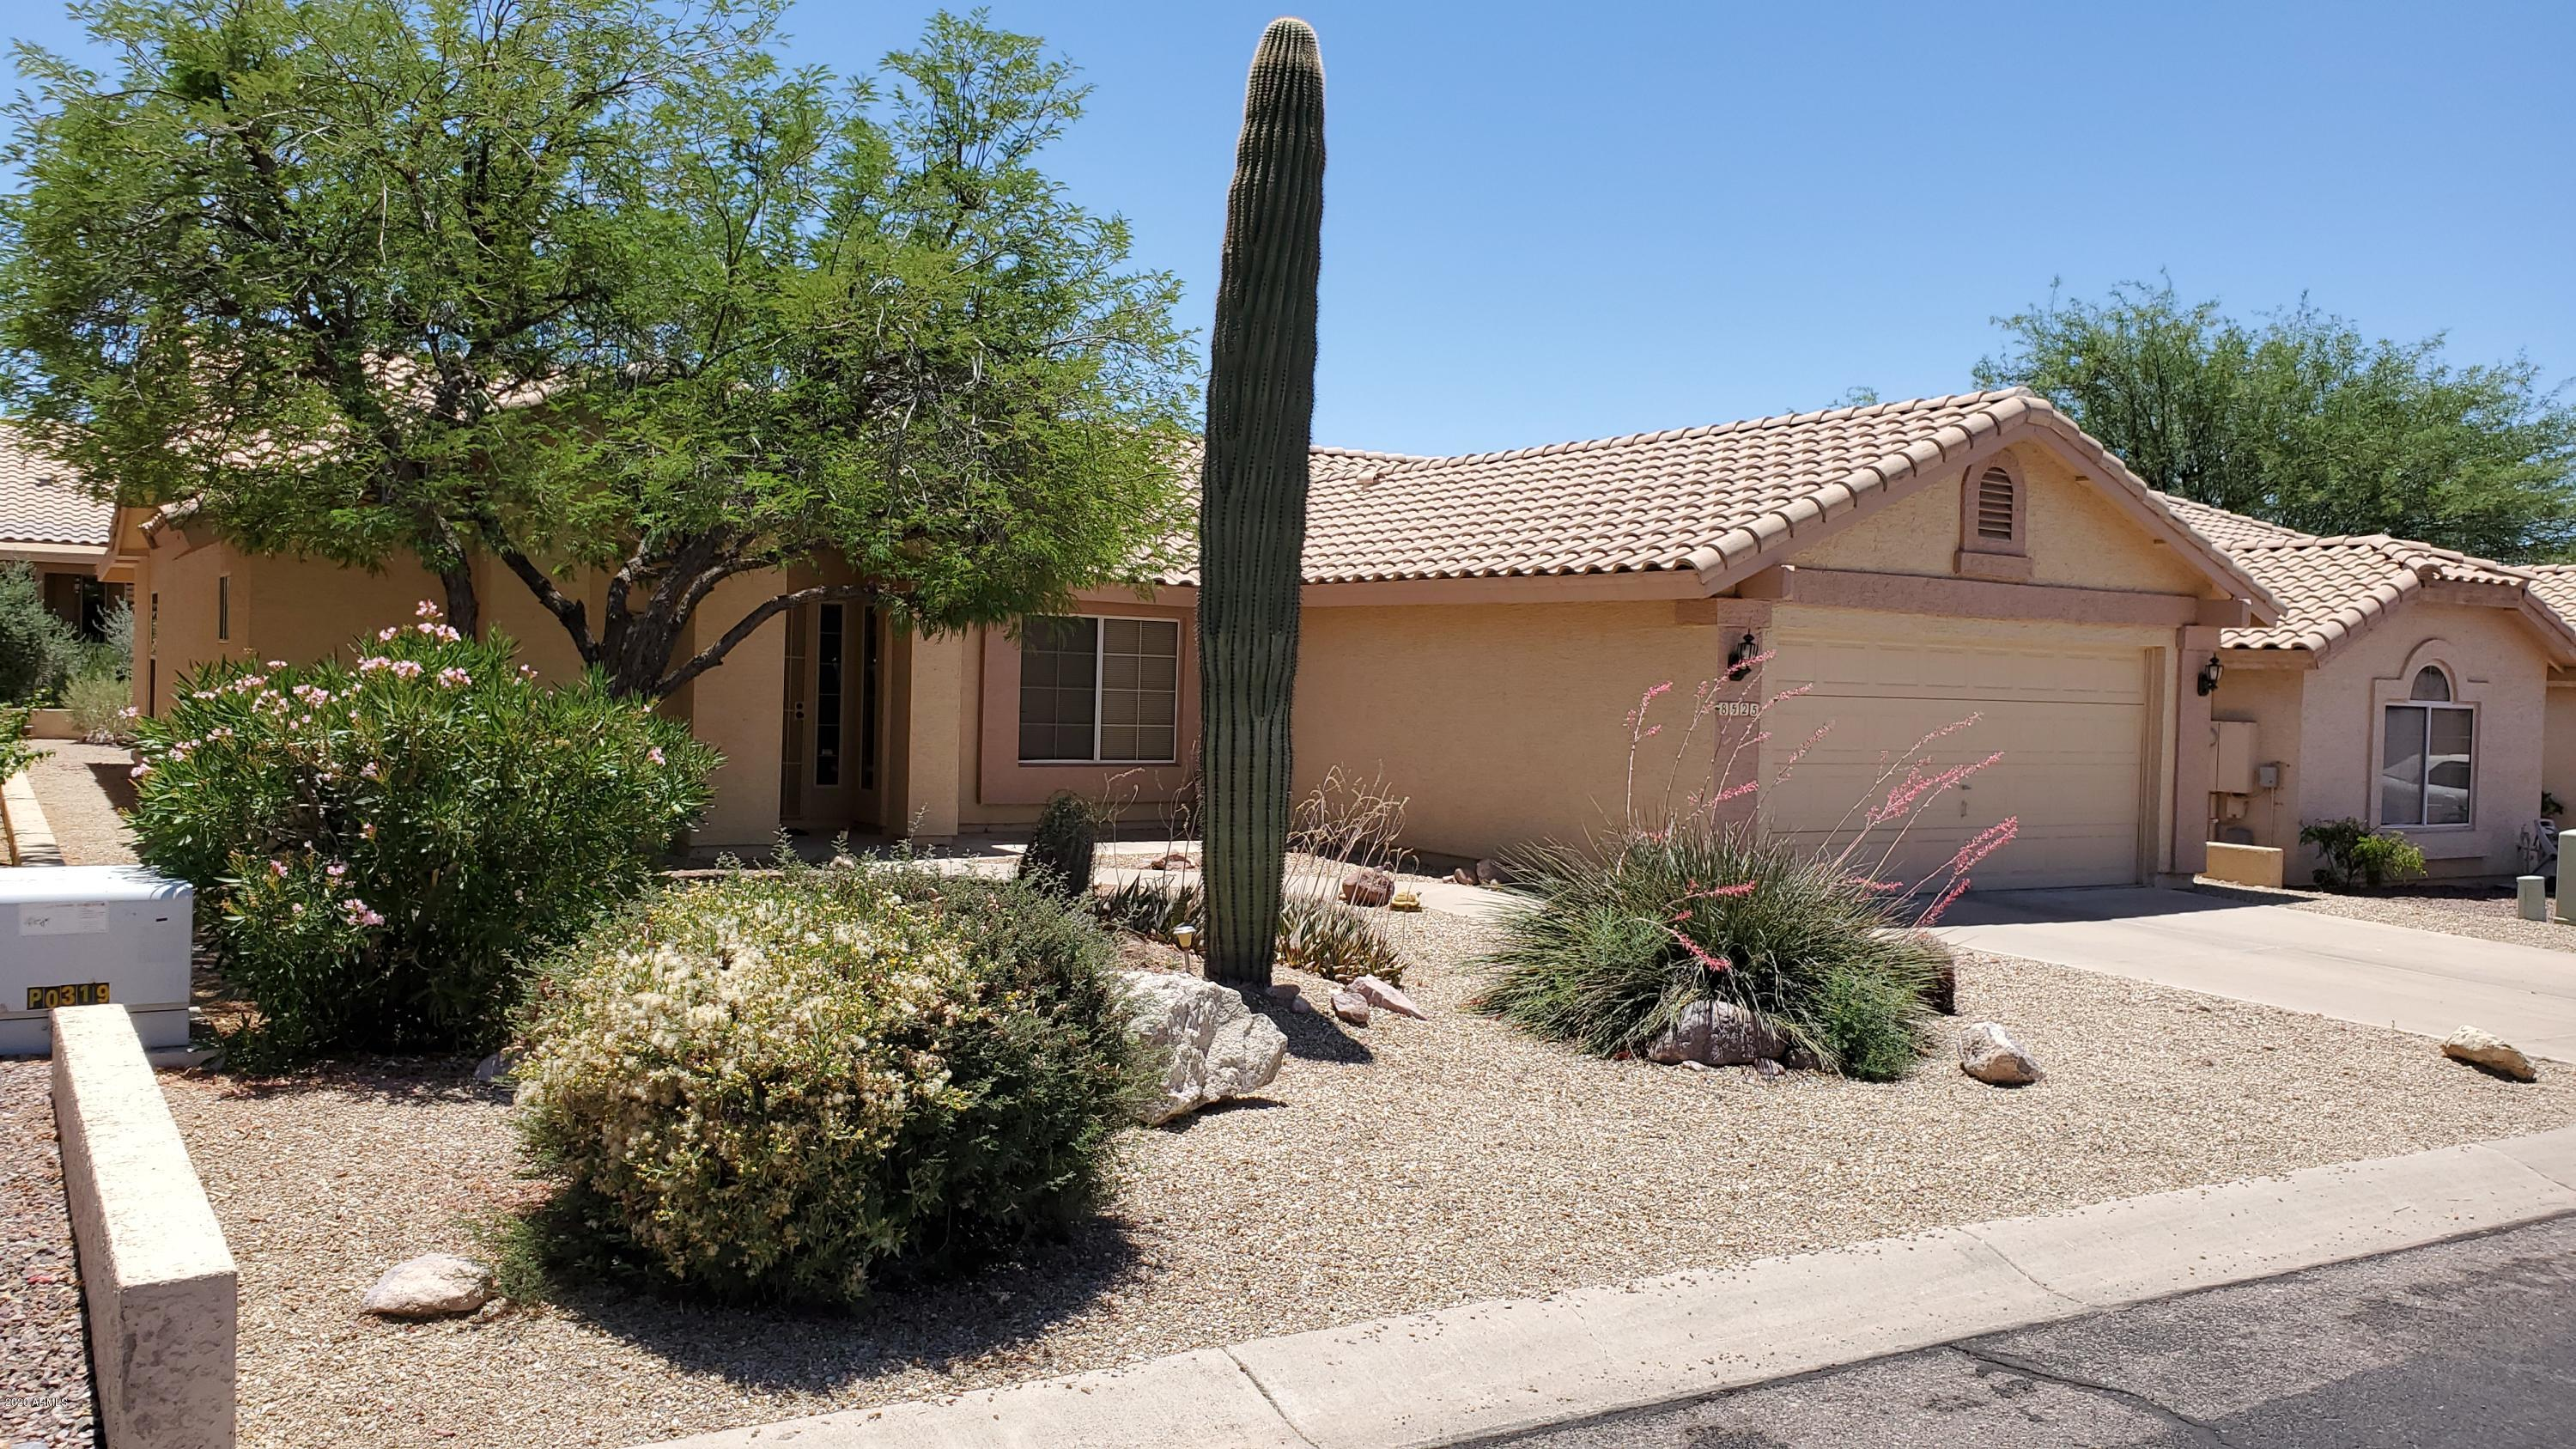 MLS 6093803 8525 E YUCCA BLOSSOM Circle, Gold Canyon, AZ 85118 Gold Canyon AZ Mountainbrook Village